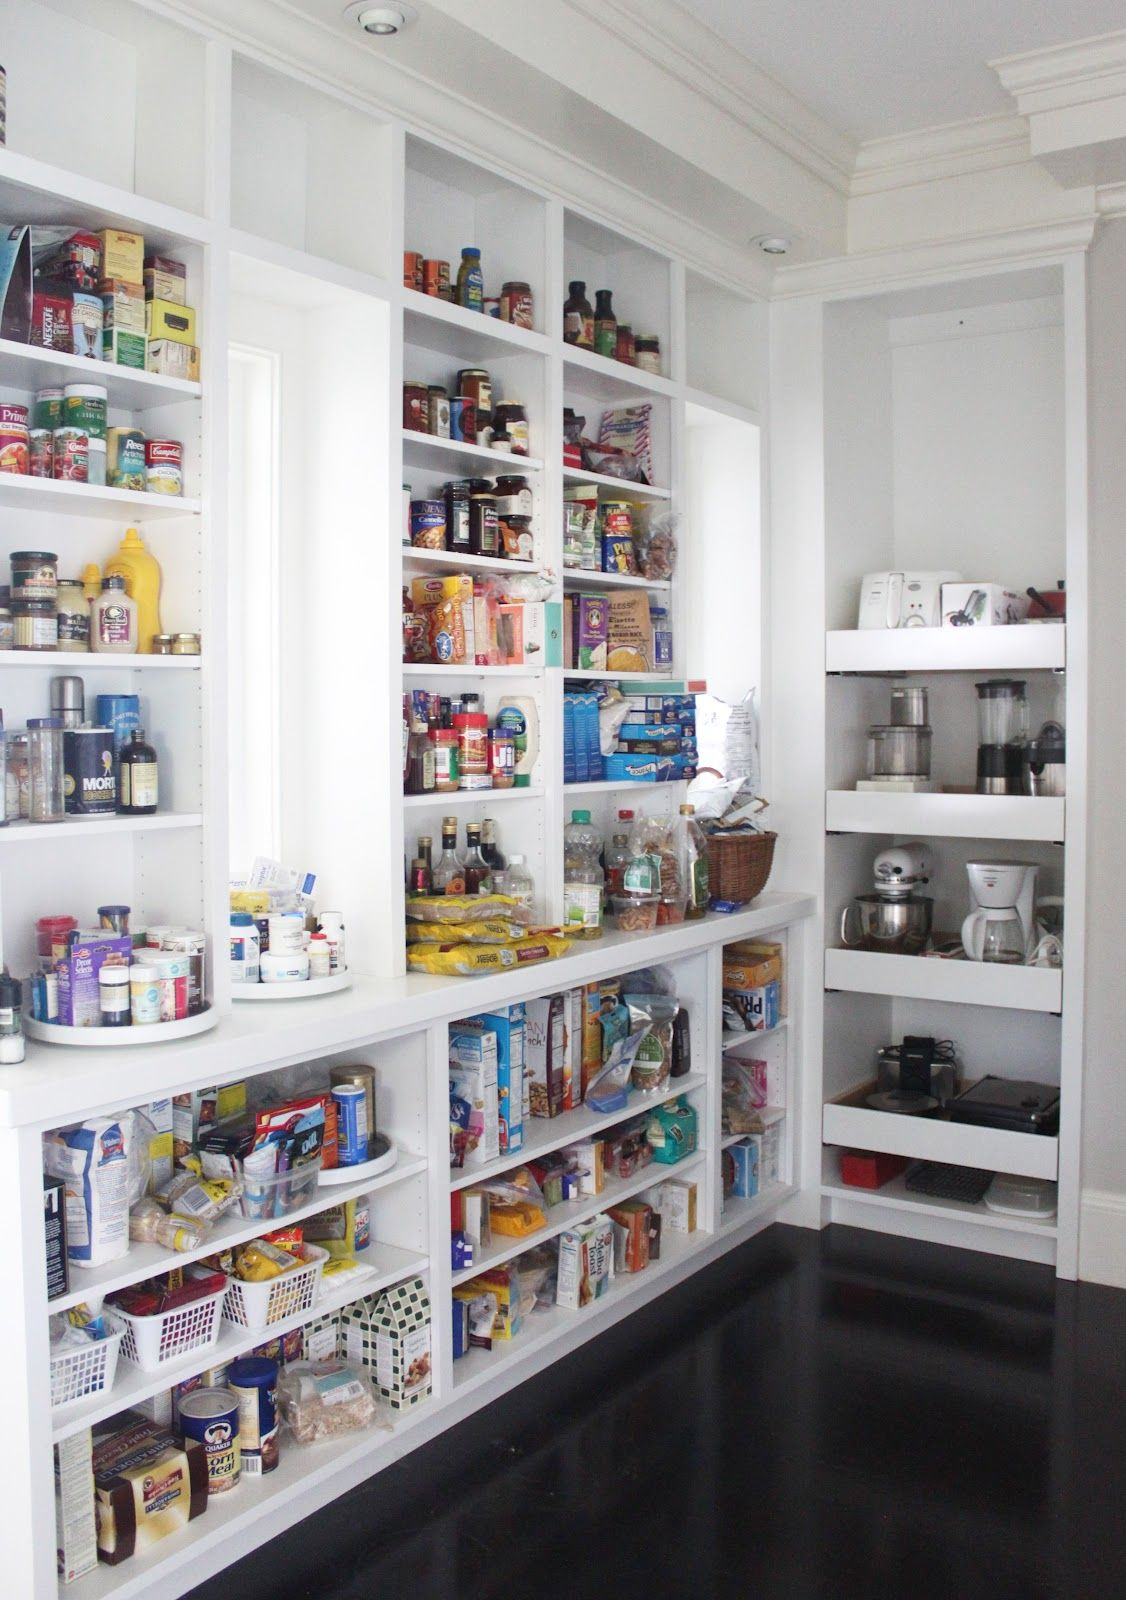 pantry design ideas small kitchen. Open kitchen pantry shelving  Interior Exterior Doors Kitchen